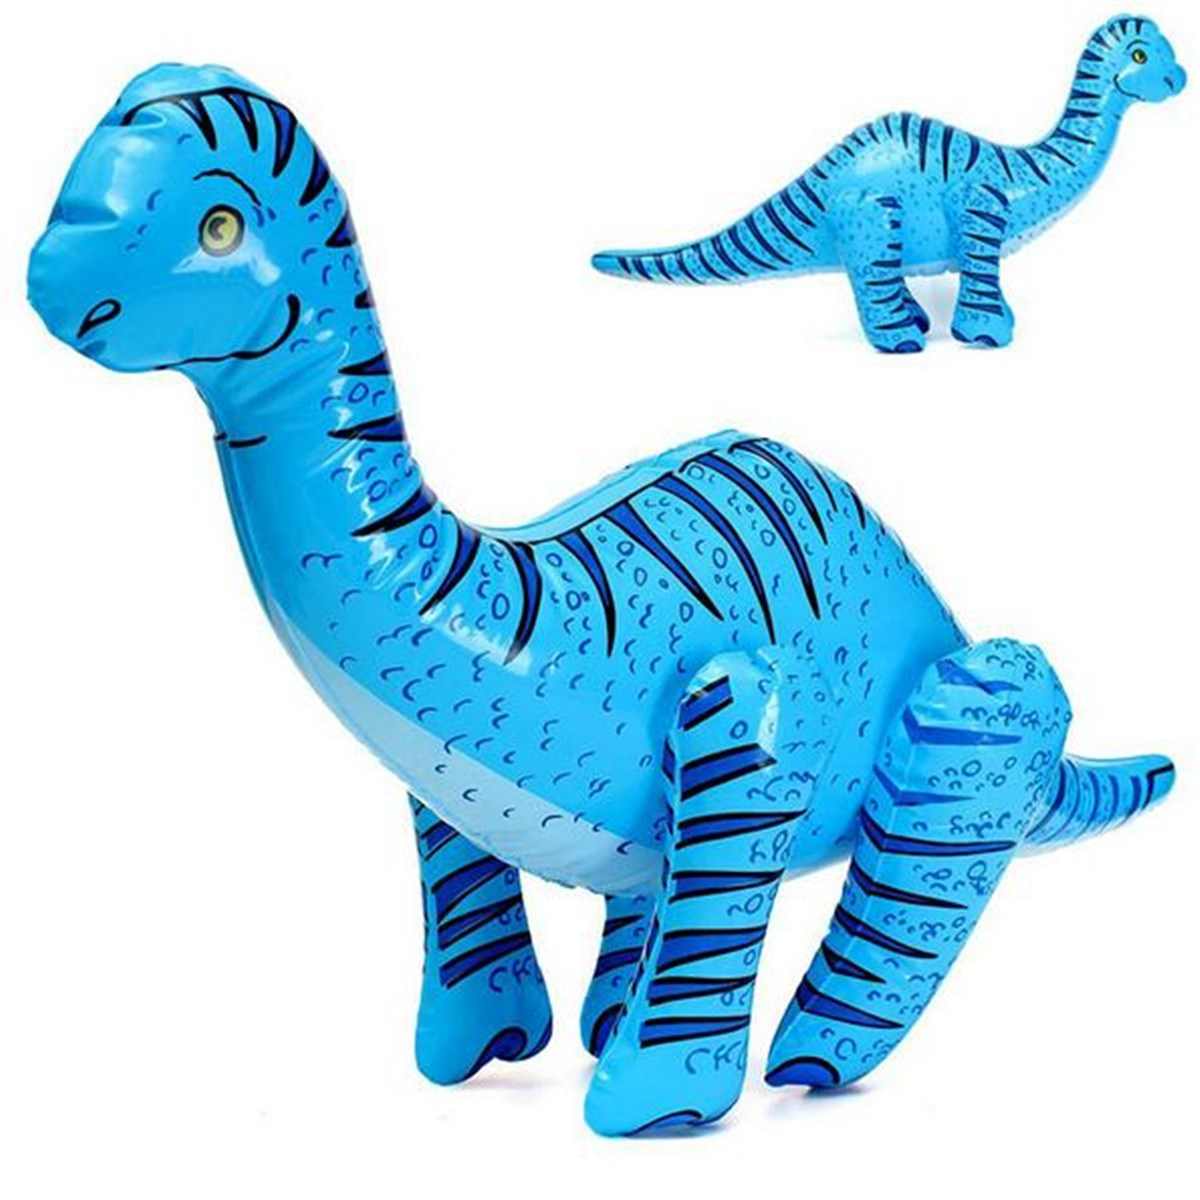 New-Arrival-Inflatable-PVC-Dinosaur-Blow-up-Pool-Water-Toy-Children-Kids-Toy-Kids-Animal-Toy-For-Party-Children-Gift-1